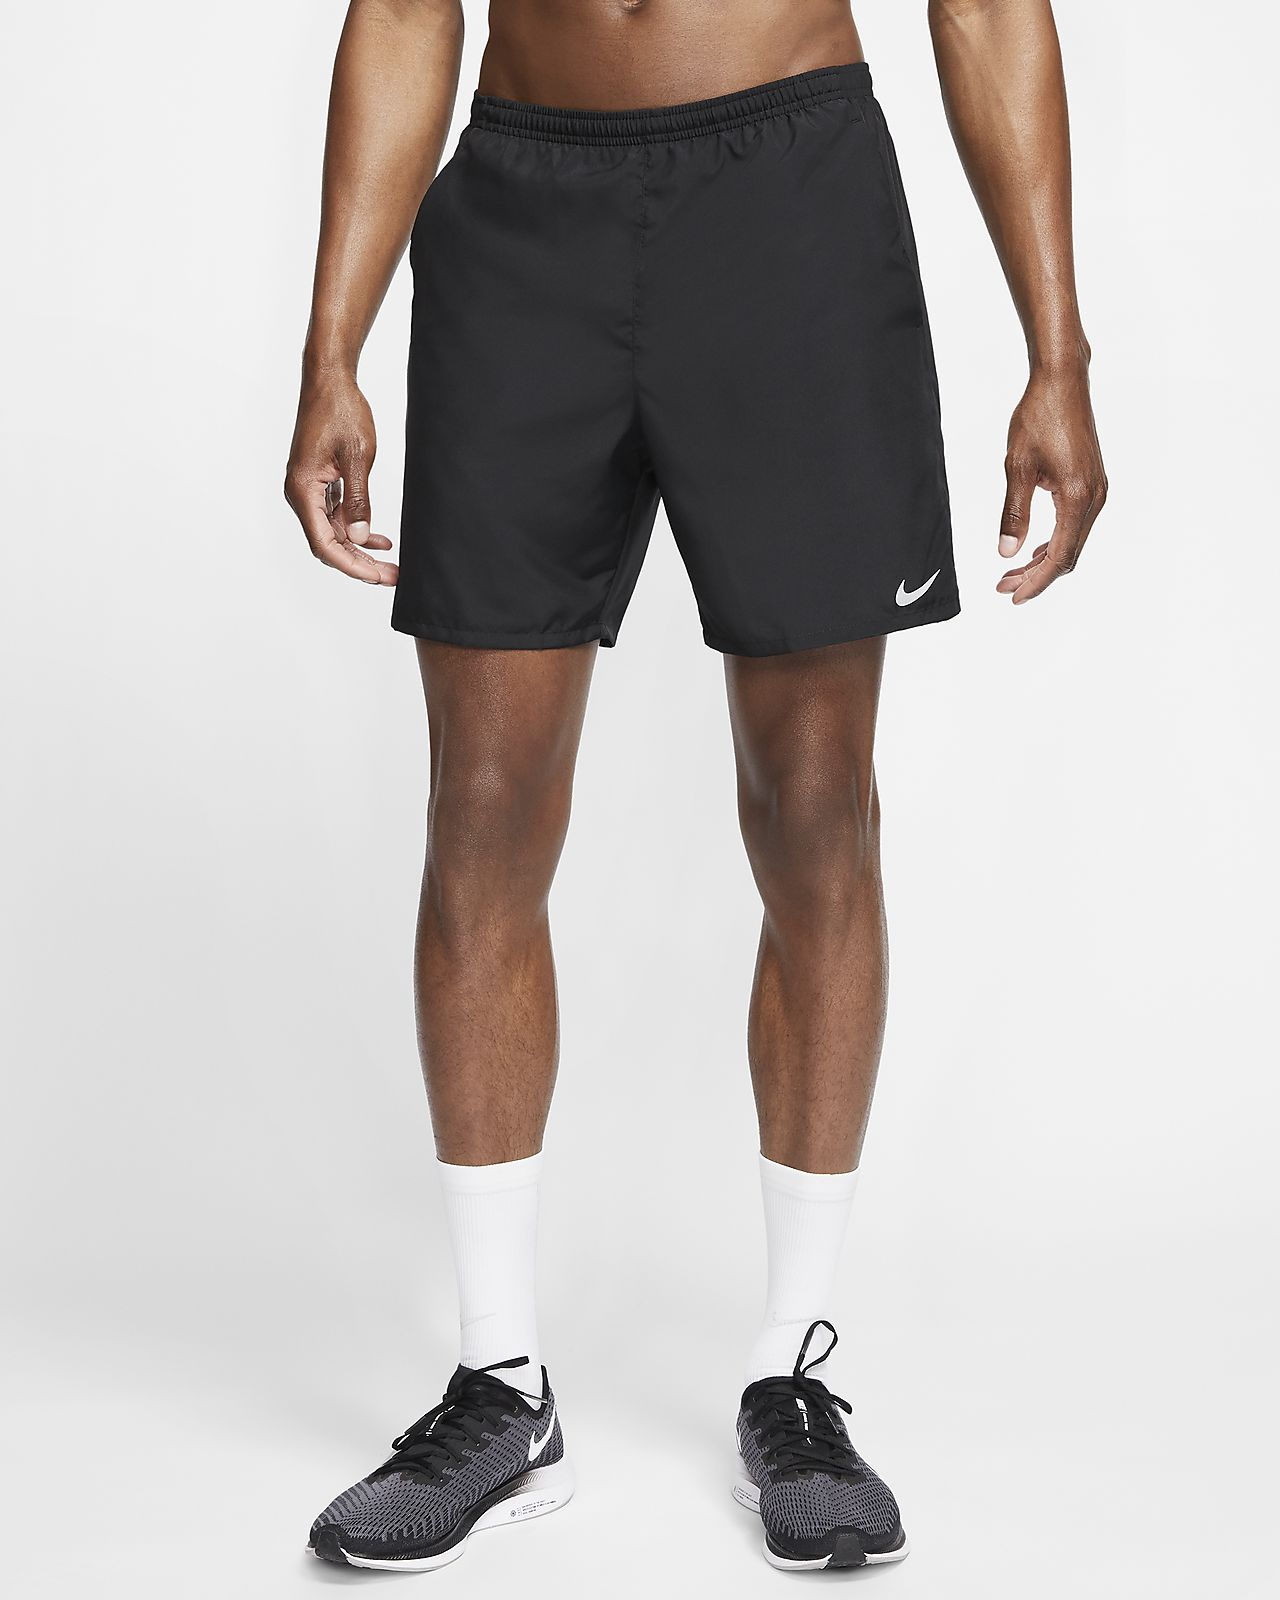 Nike Dri-FIT Run Men's 18cm (approx.) Running Shorts